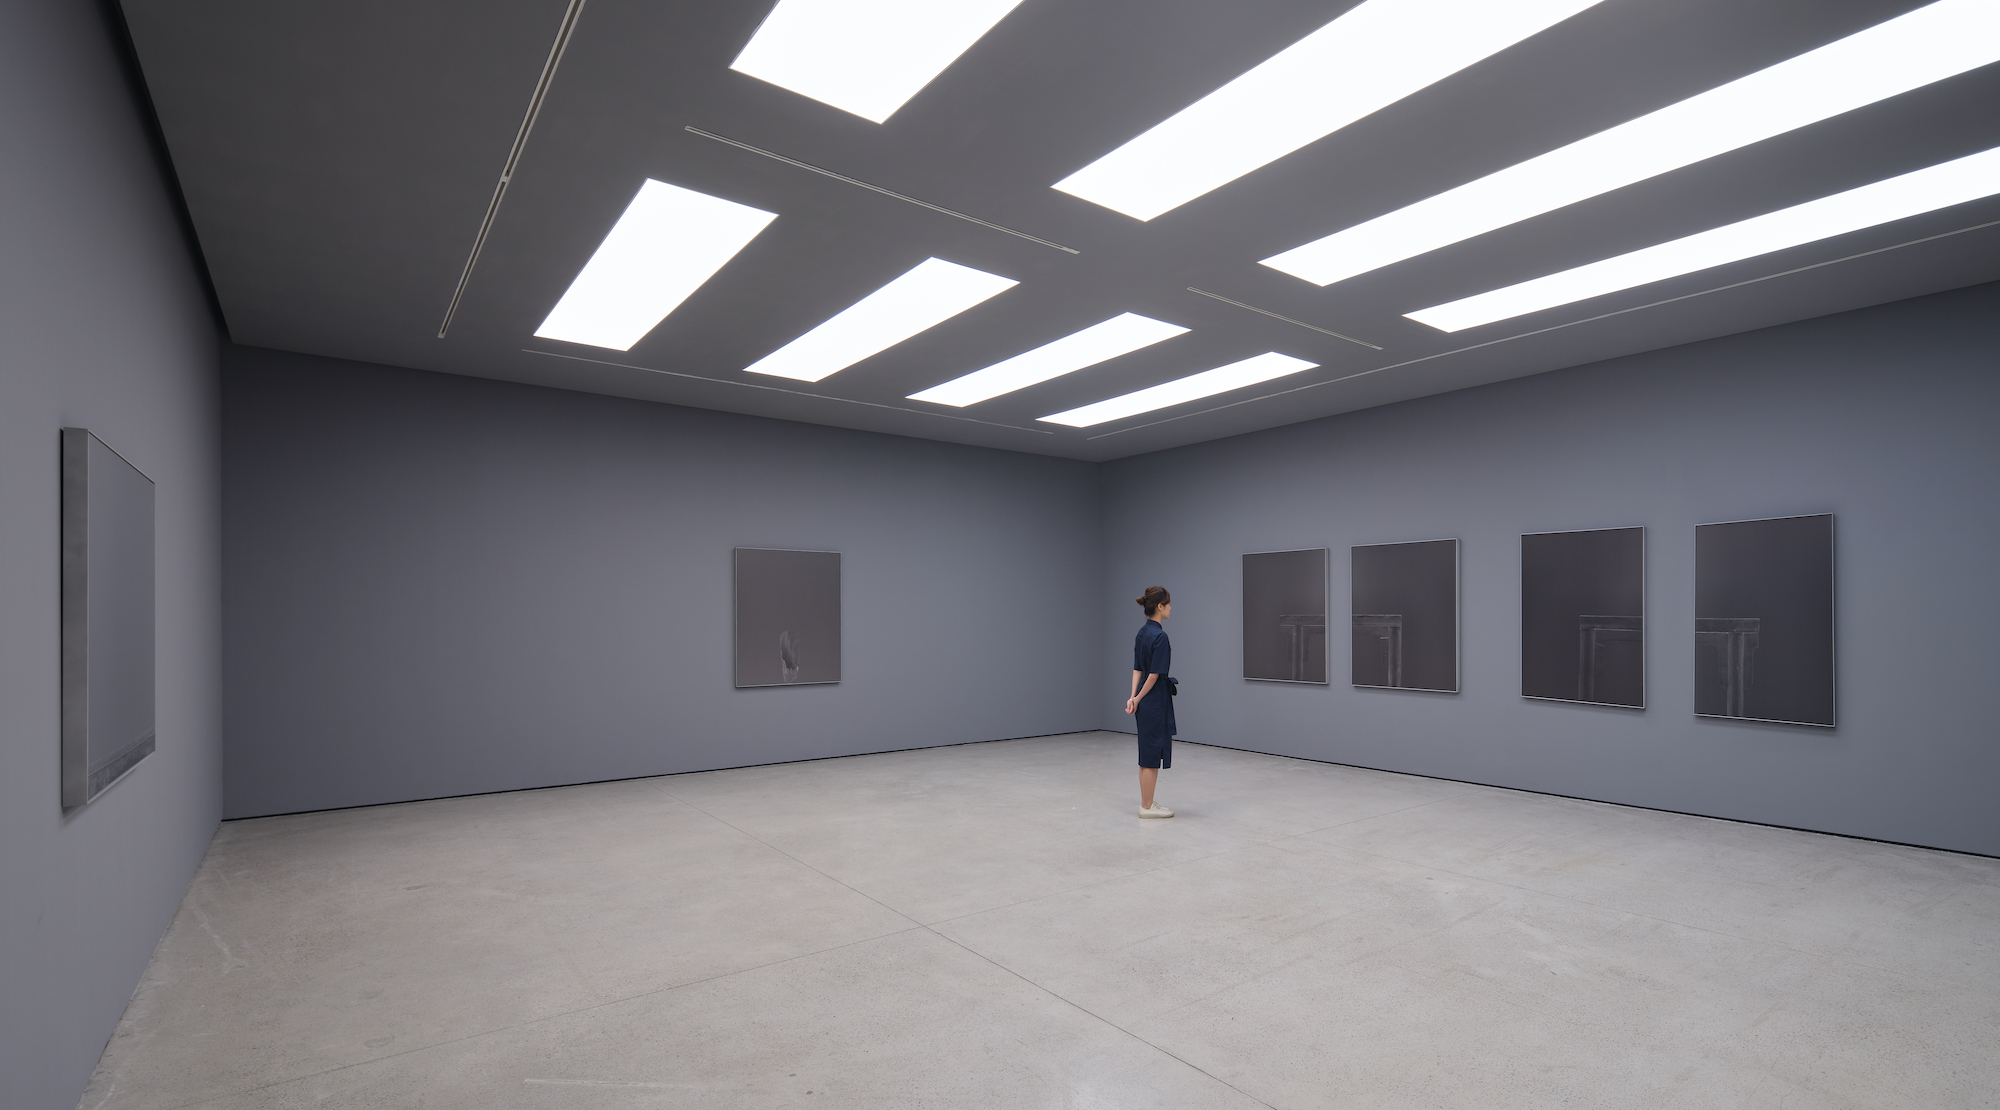 Qin Yifeng_White Cube Hong Kong_SEP 2019 © Qin Yifeng. Photo © White Cube (Kitmin Lee)_4